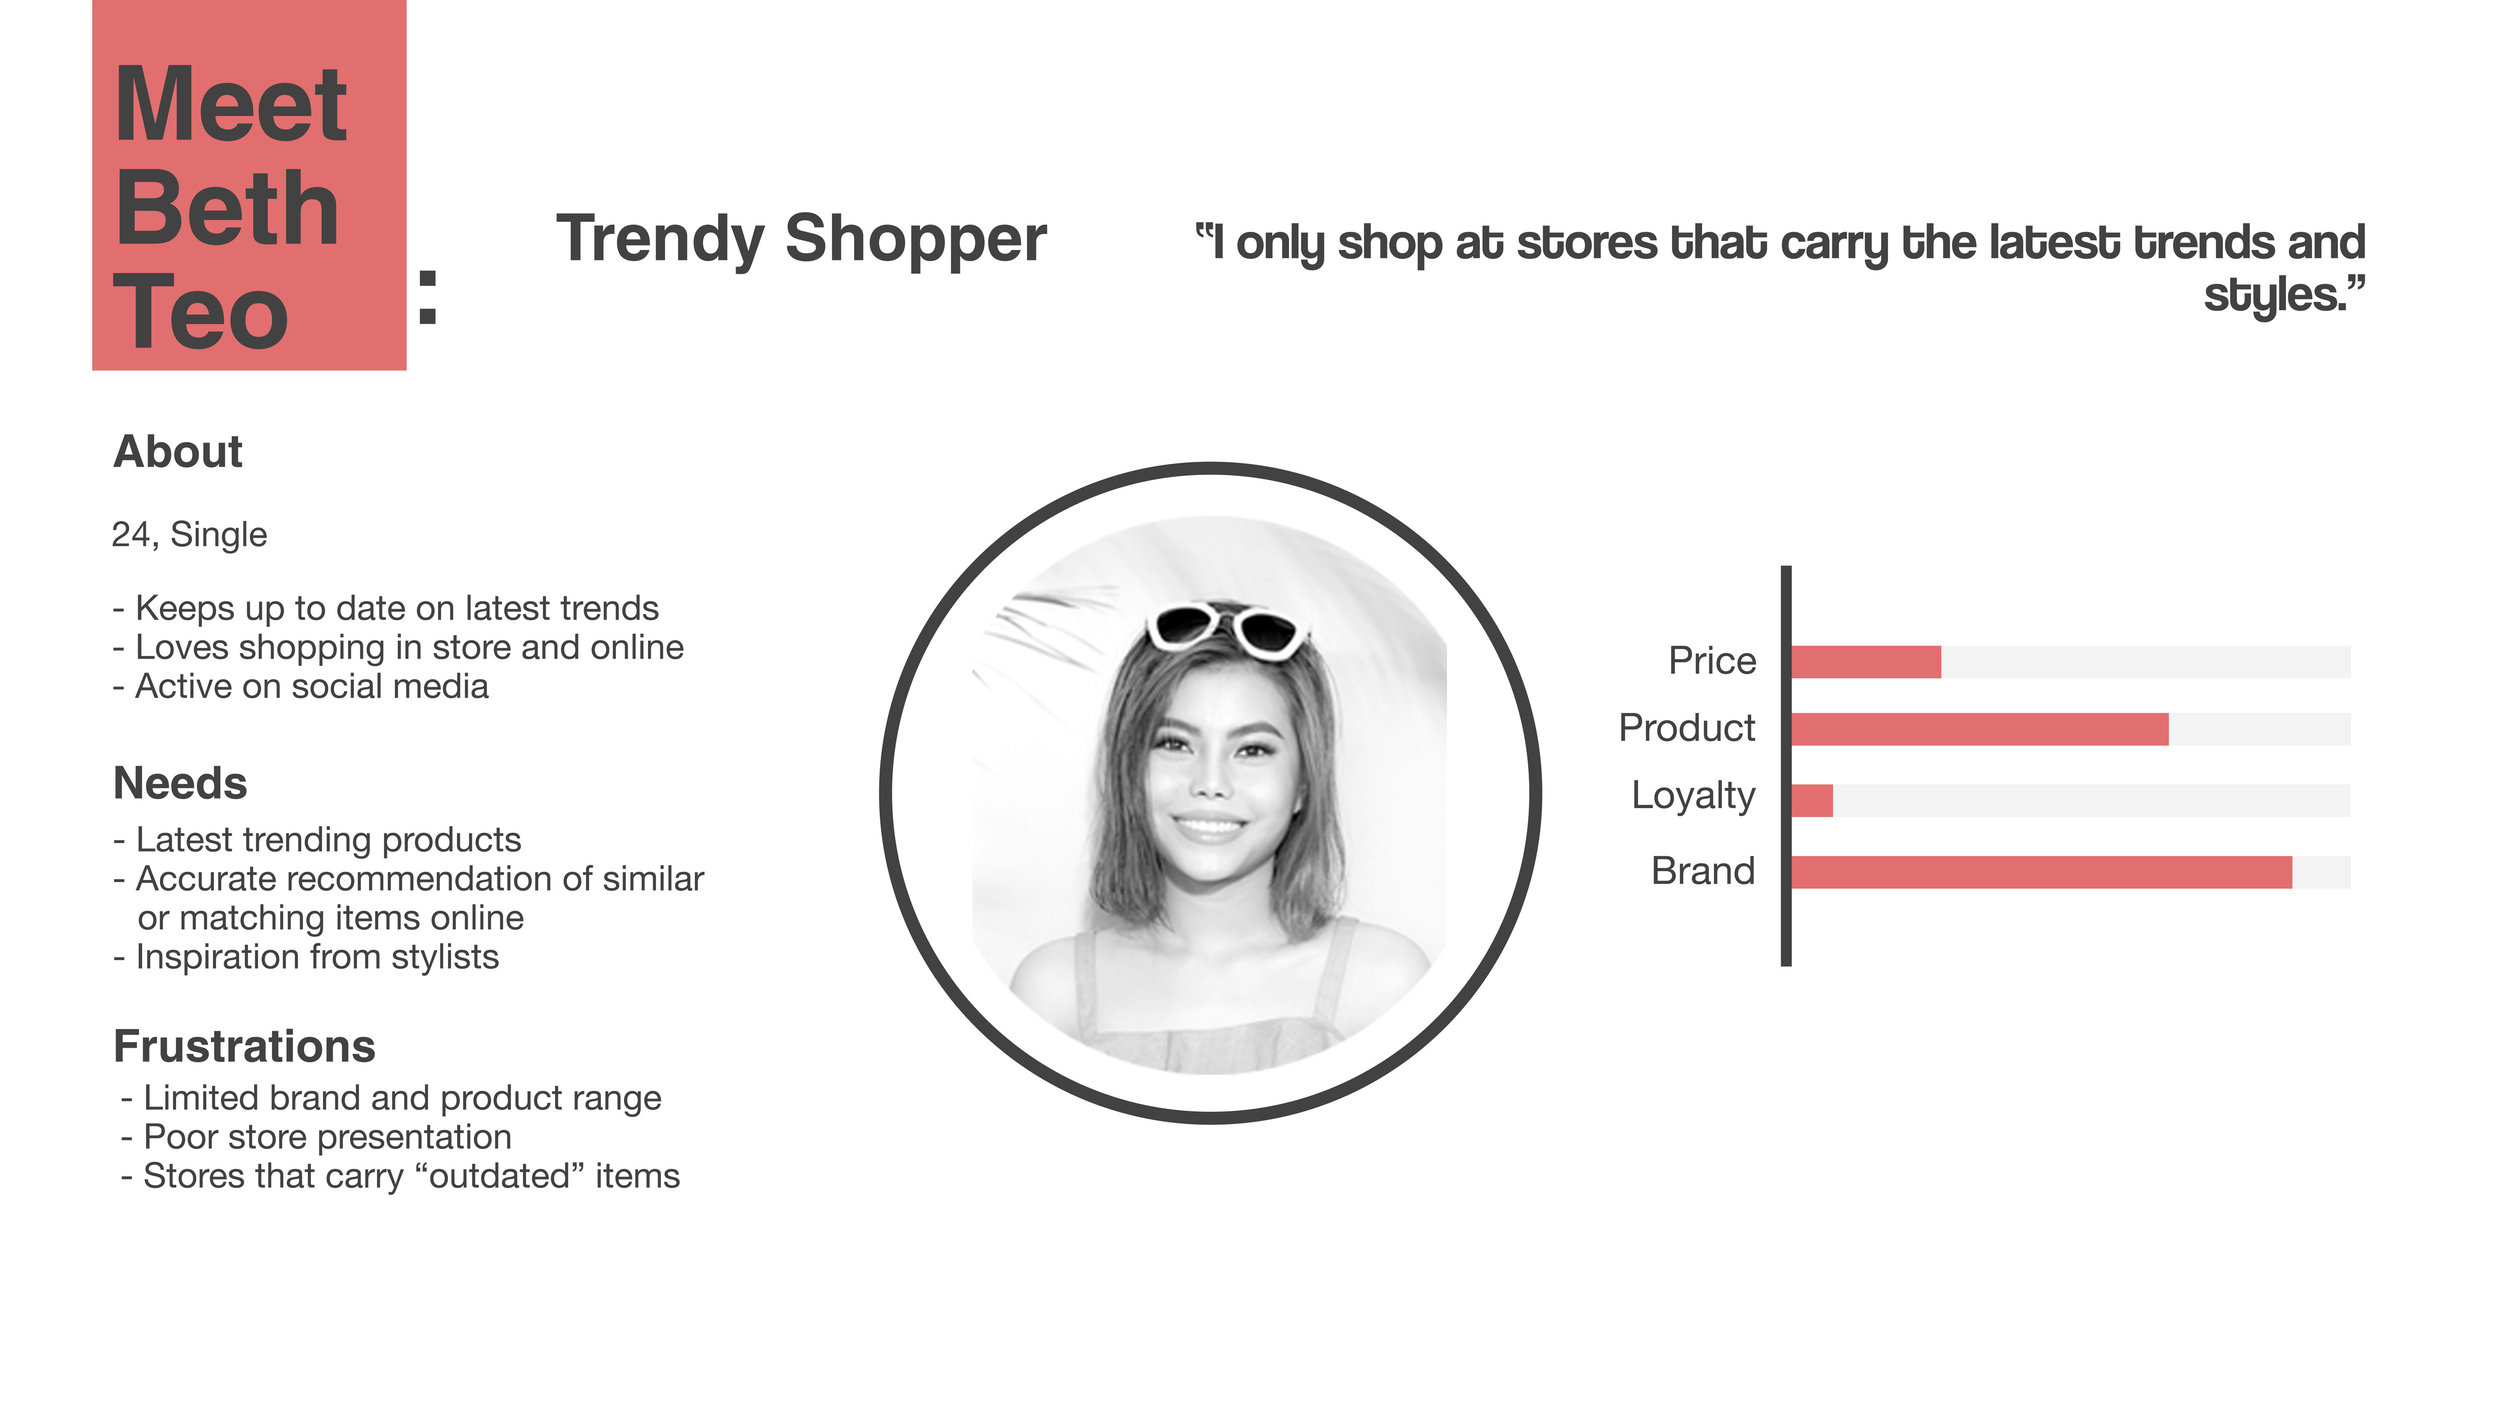 Persona #3: Beth Teo - trendy-shopper